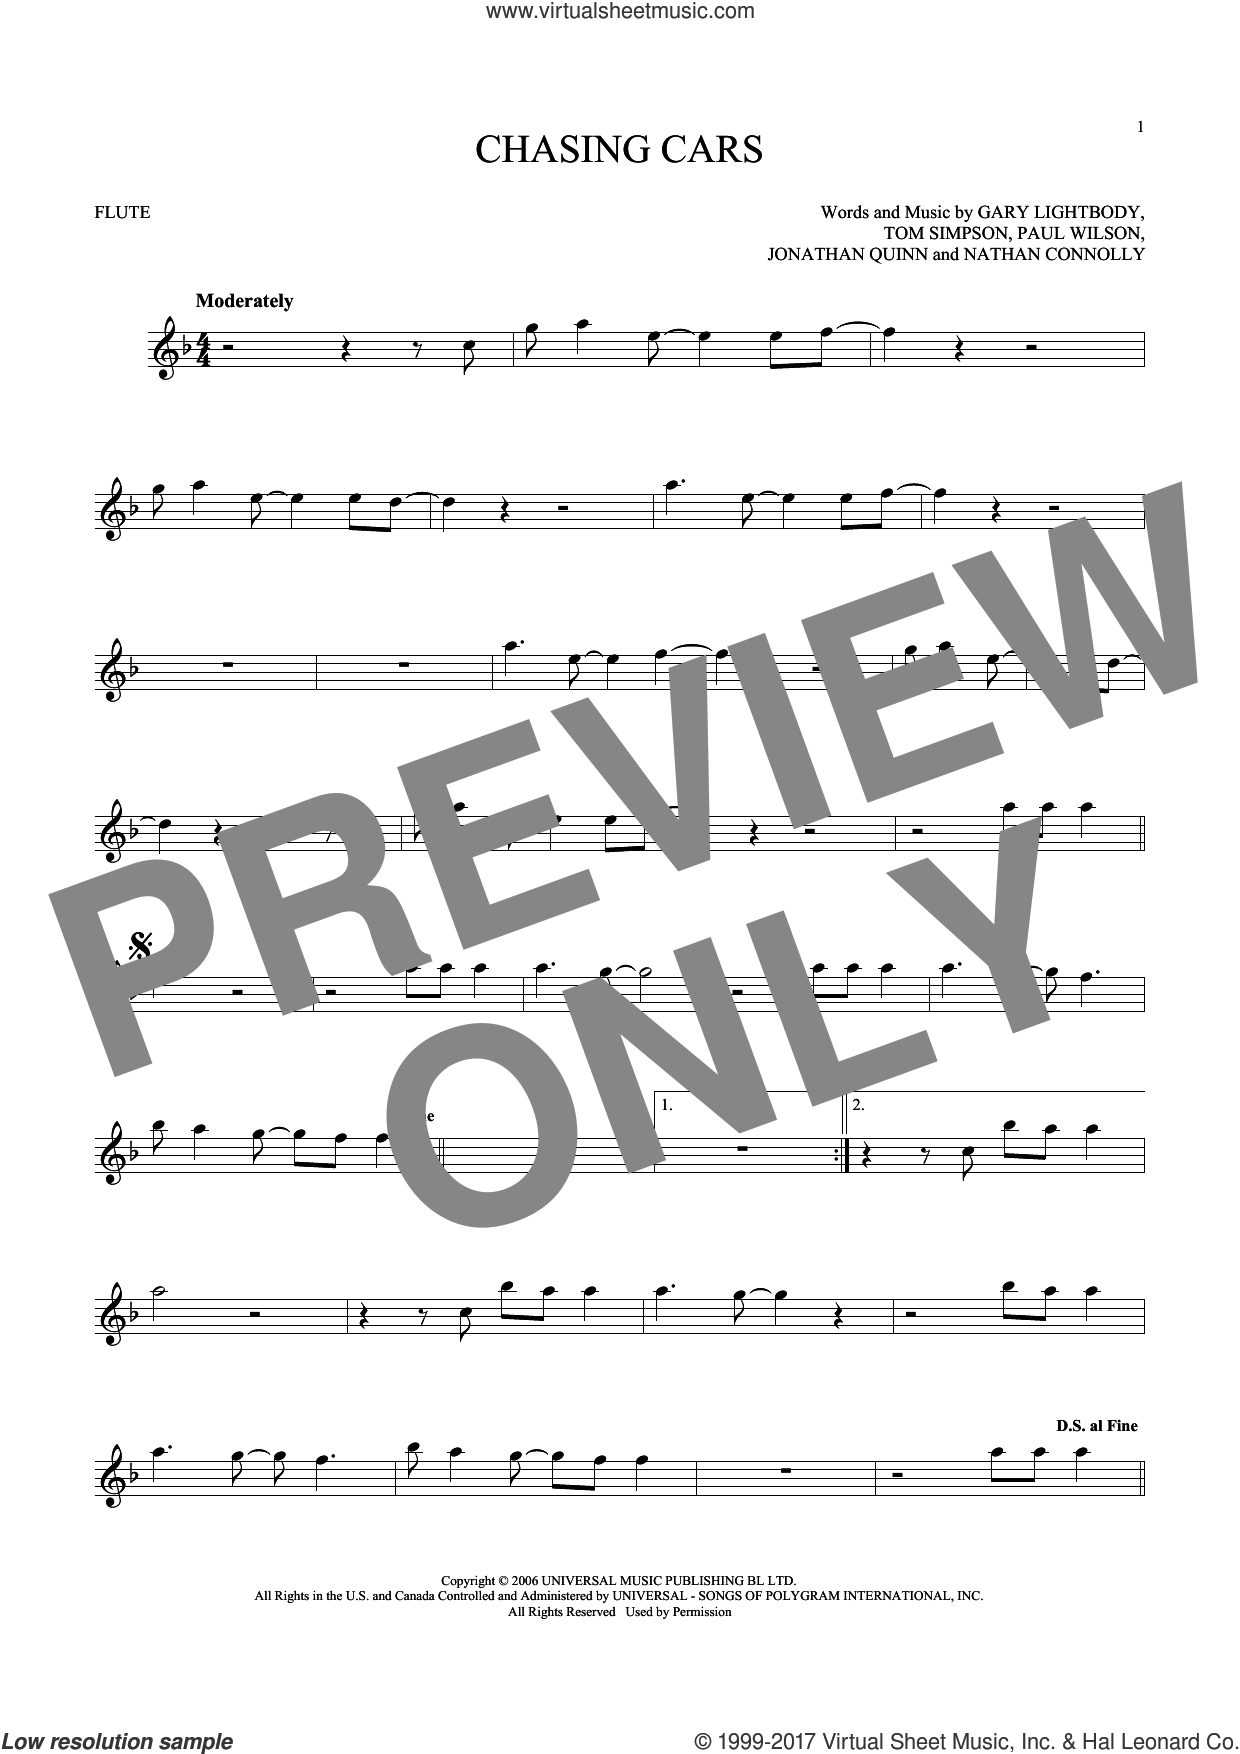 Chasing Cars sheet music for flute solo by Snow Patrol, Gary Lightbody, Jonathan Quinn, Nathan Connolly, Paul Wilson and Tom Simpson, intermediate